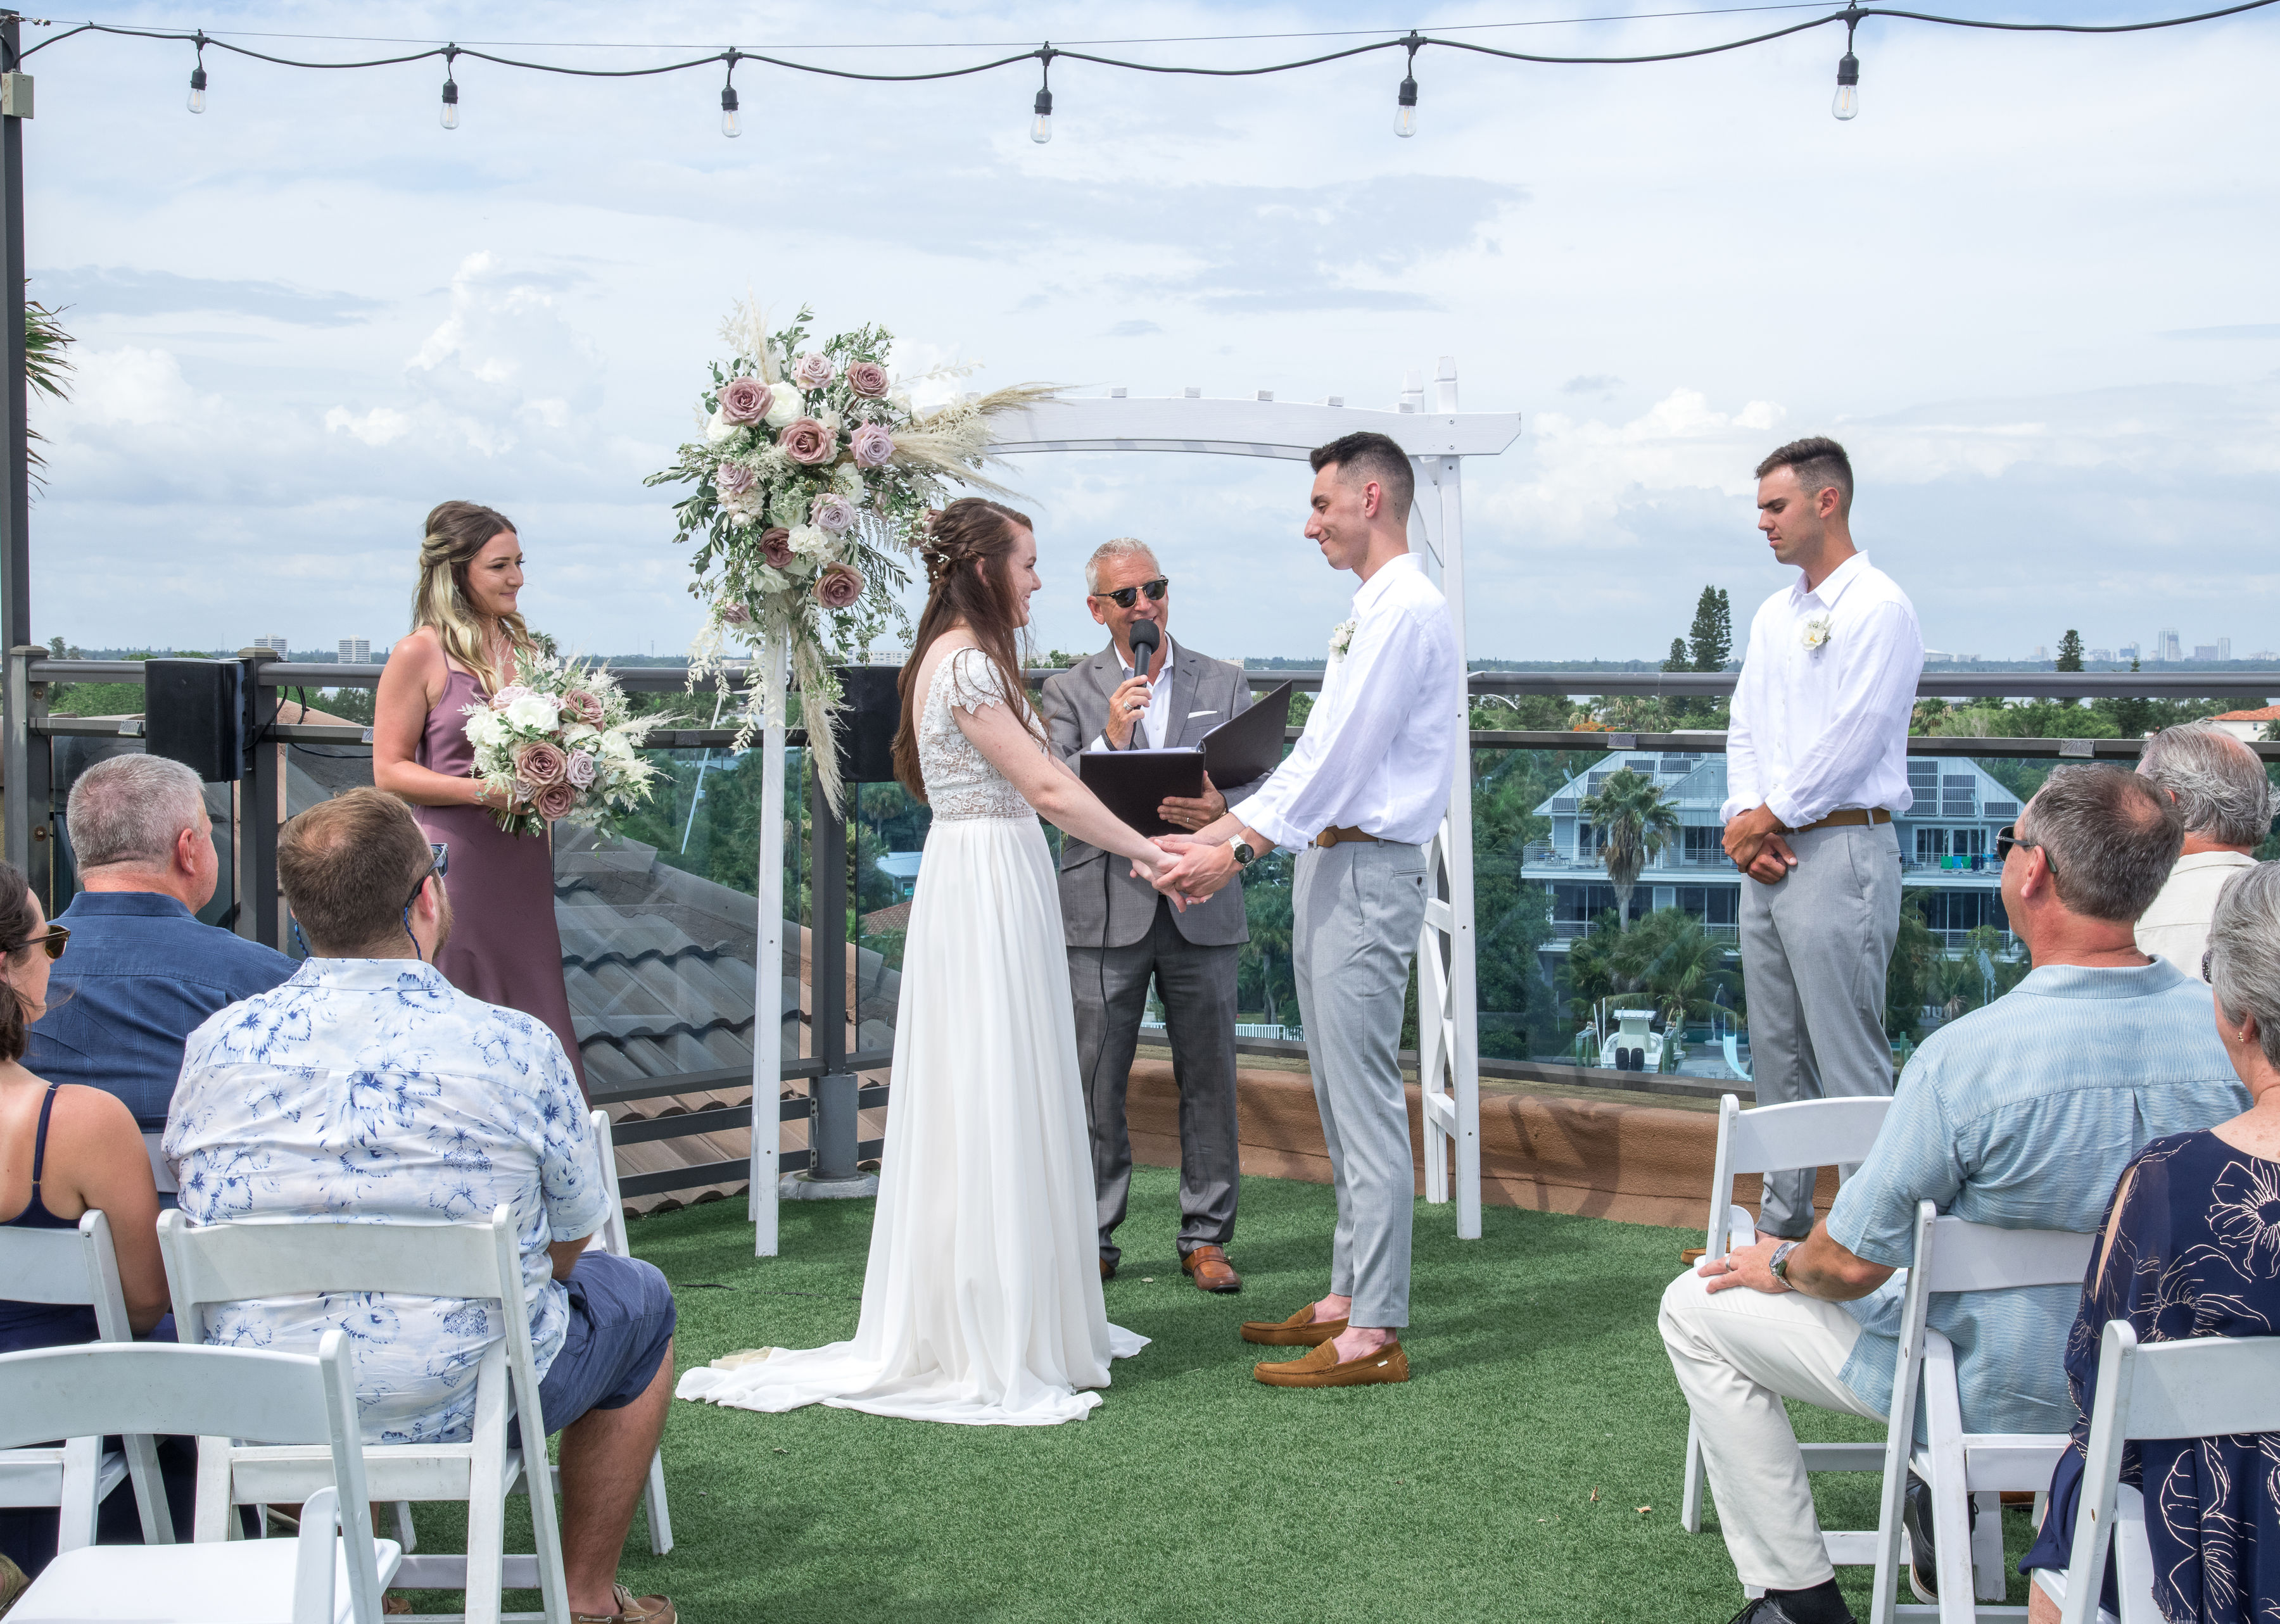 Tommy & His Wife Got Married!! [PHOTOS]